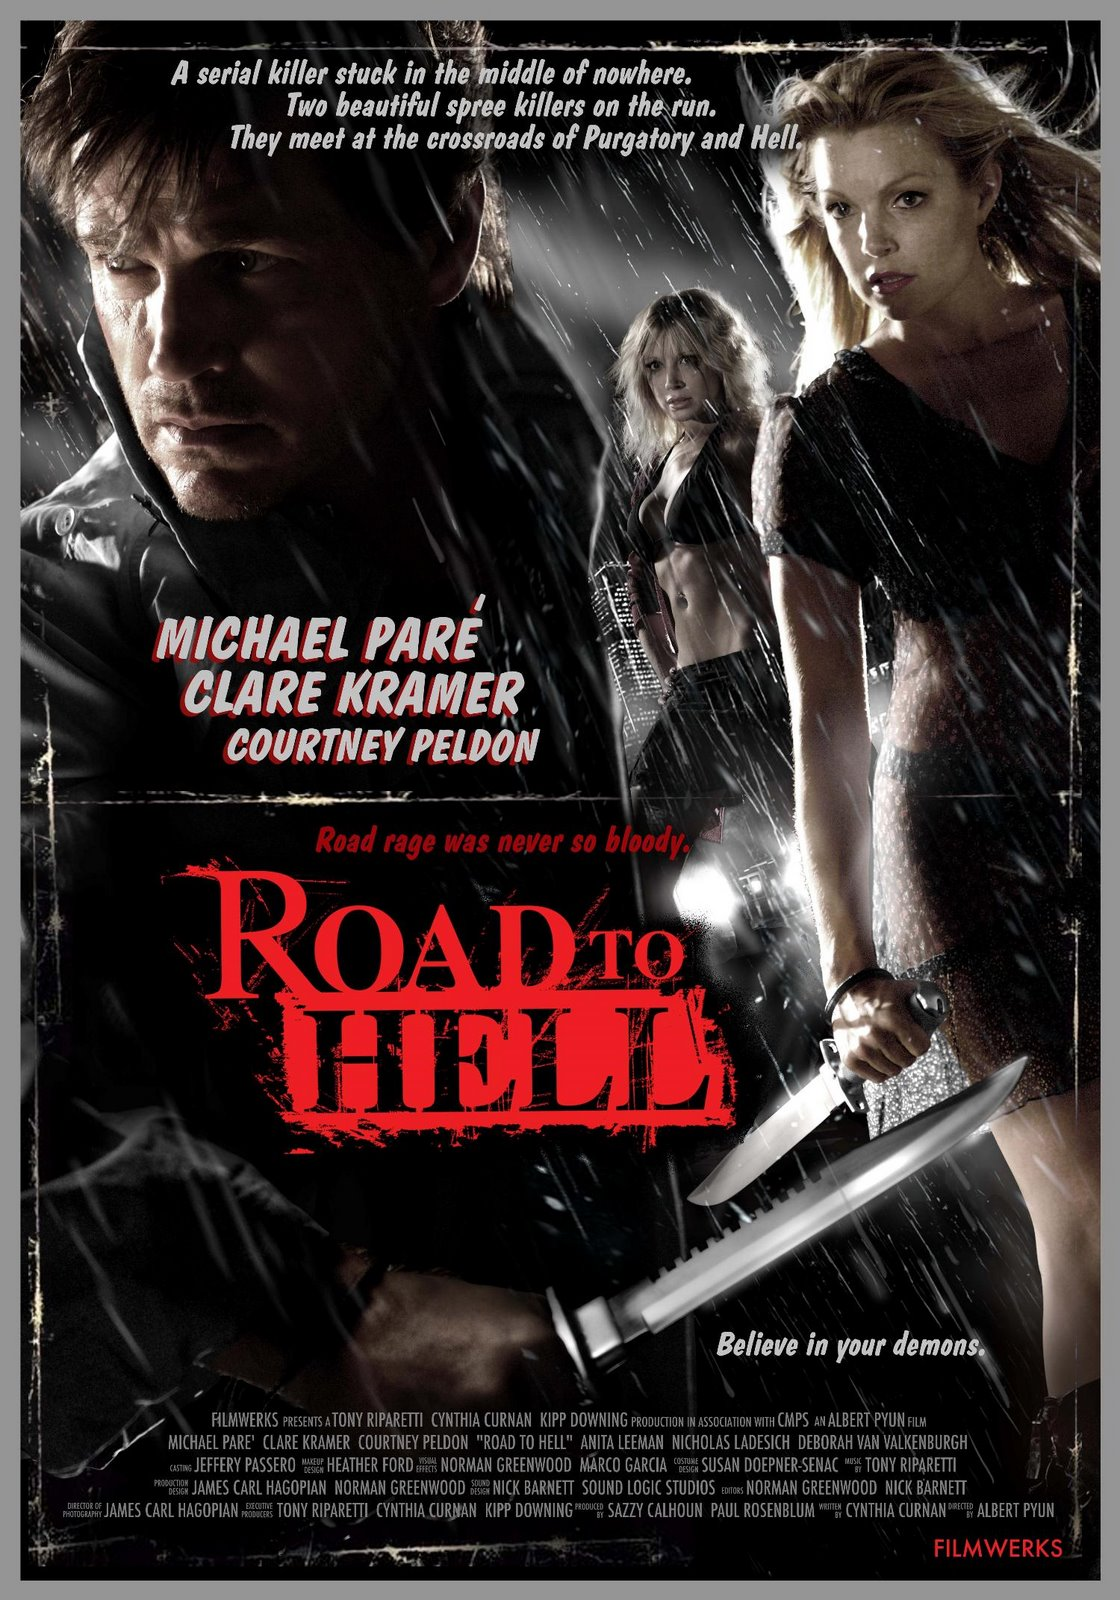 Road to hell movie poster model home images pictures for Model house movie